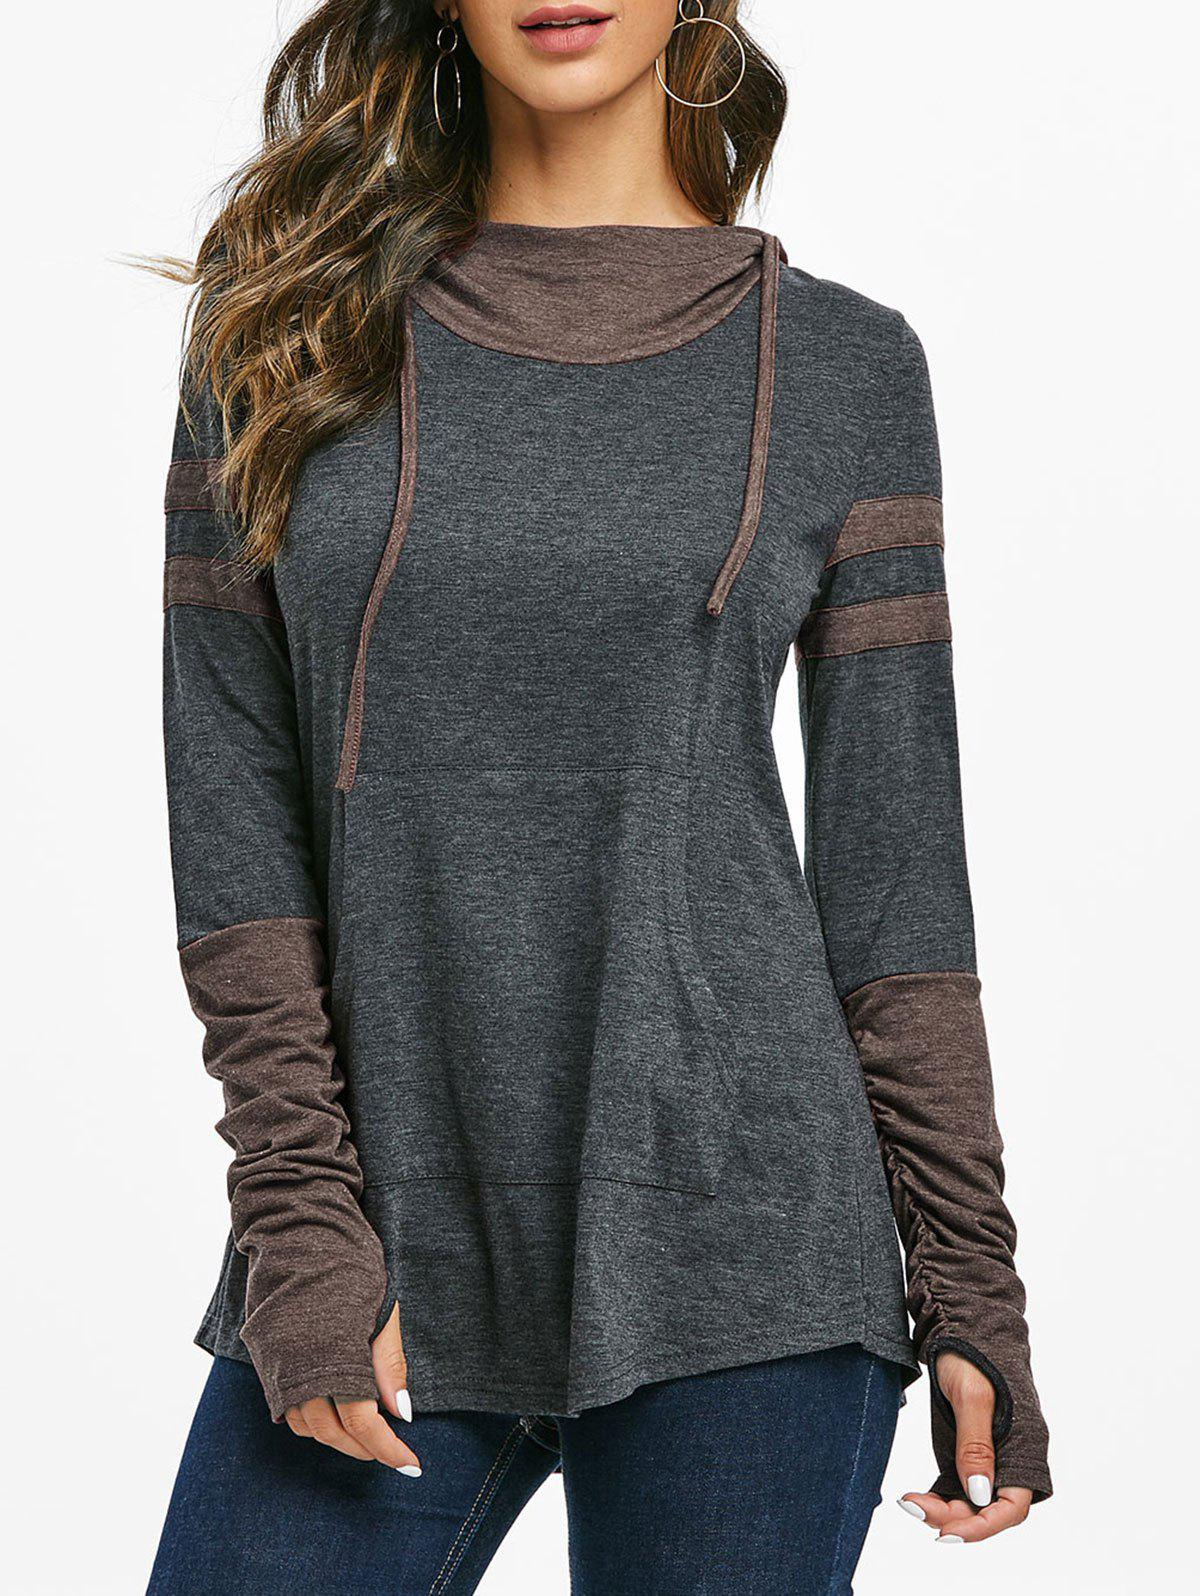 Hooded Kangaroo Pocket Ruched Contrast Heathered T-shirt - COFFEE S